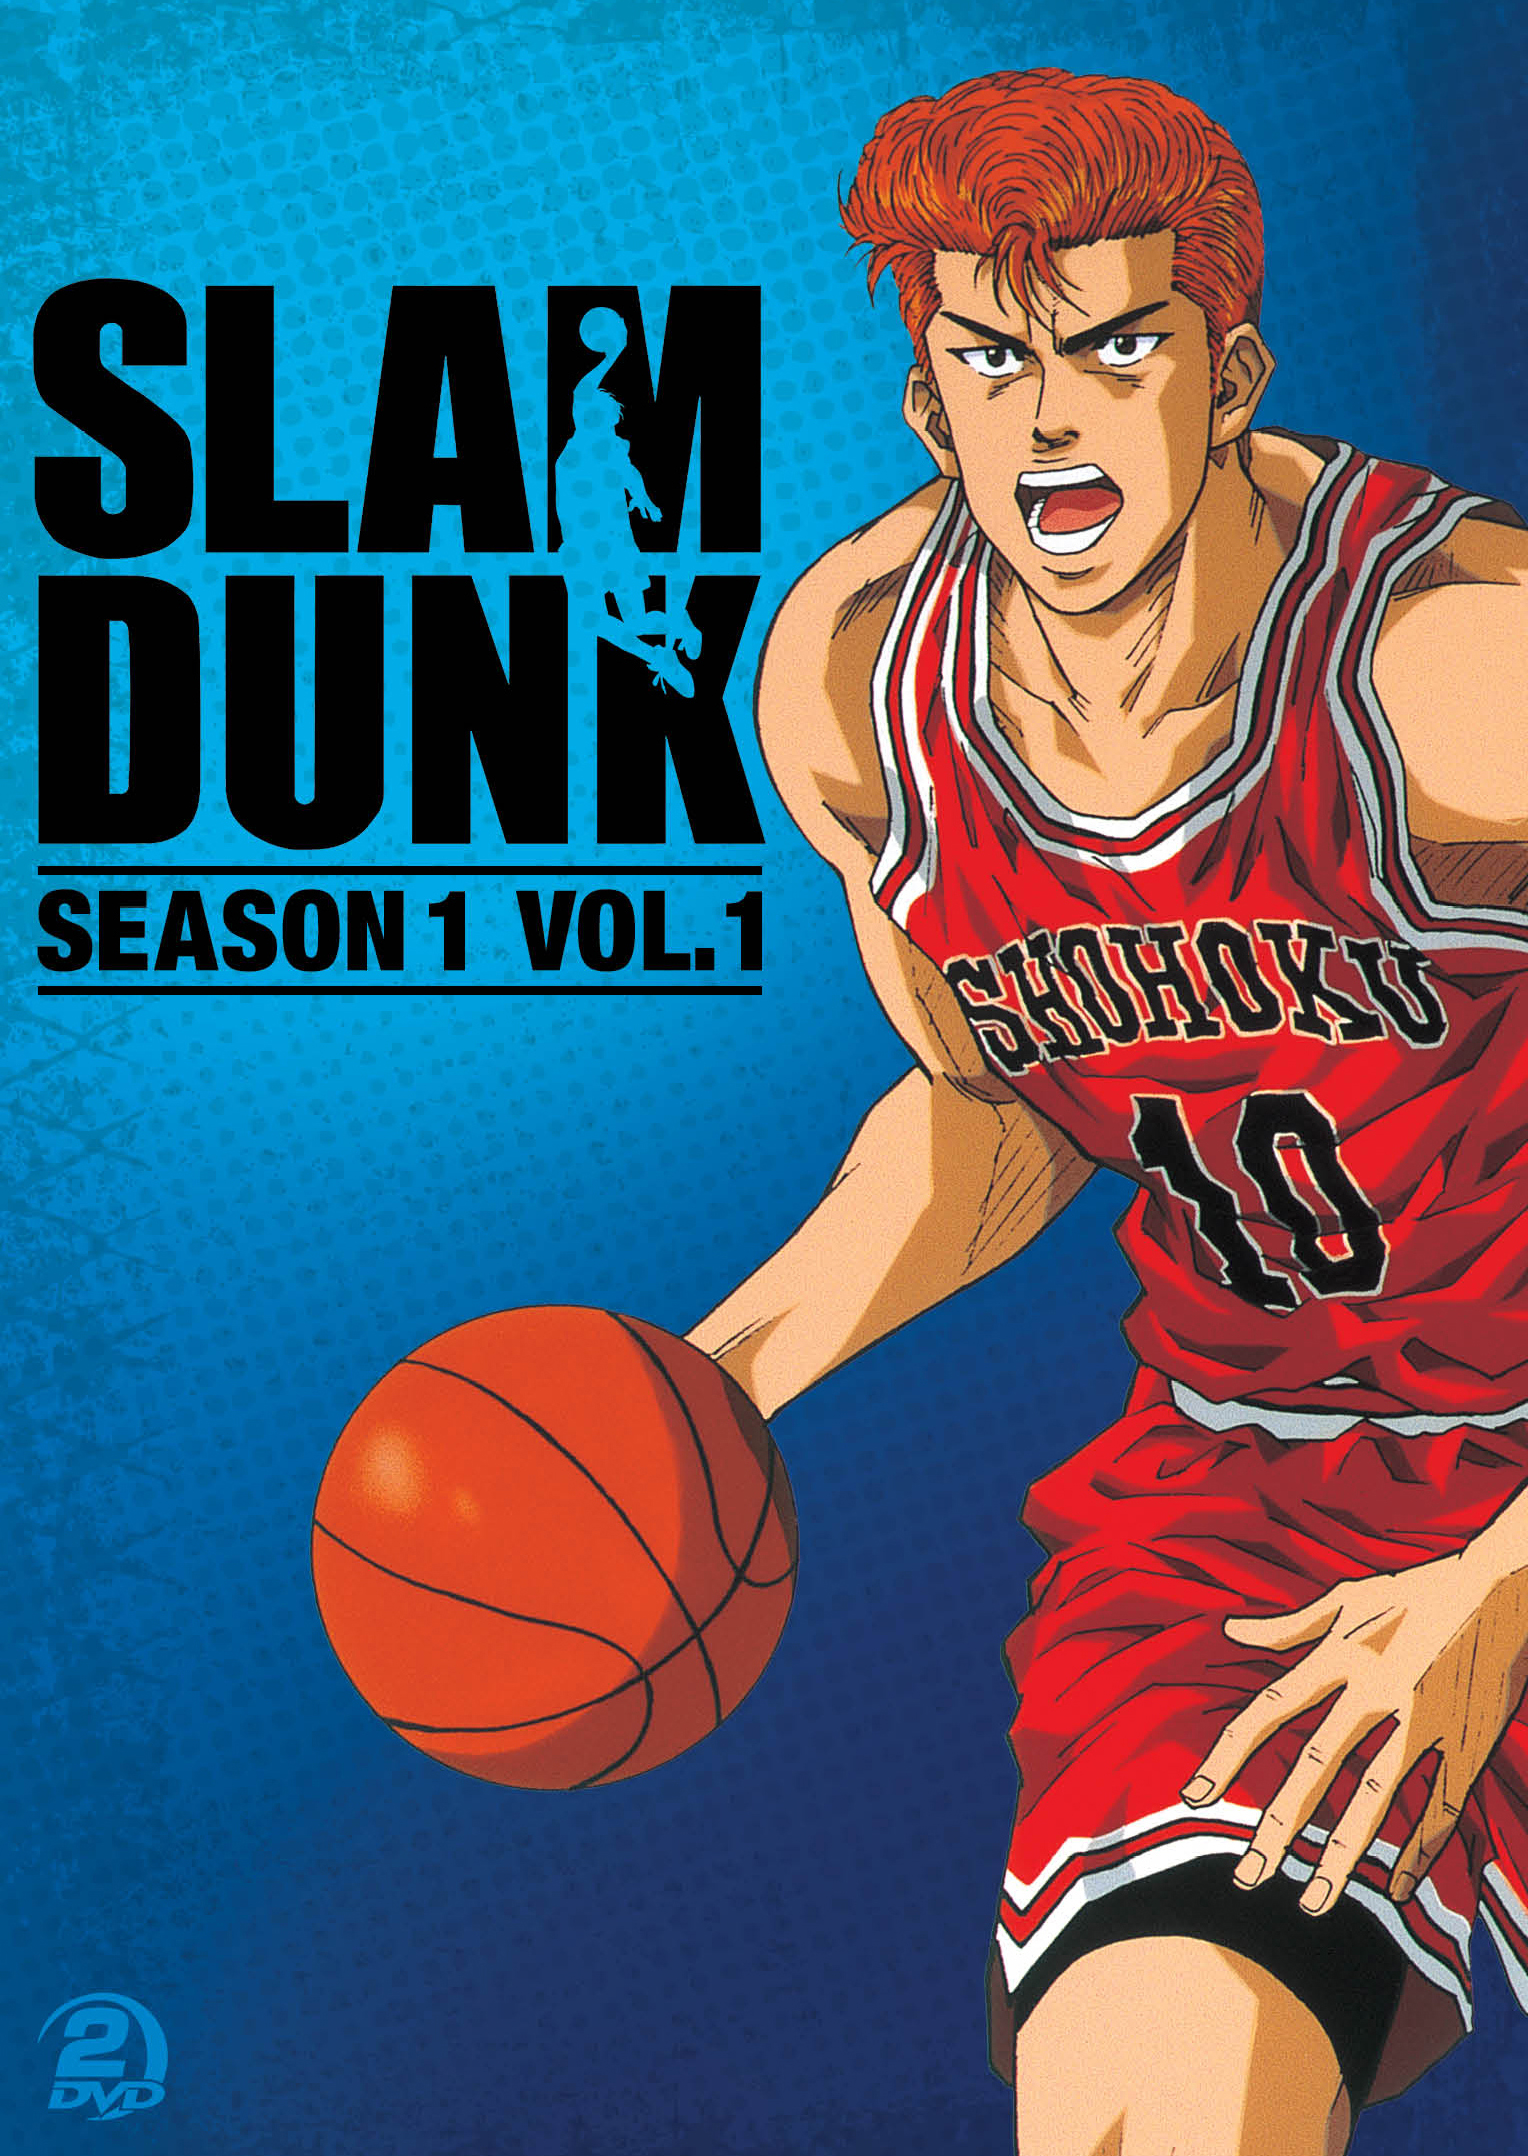 Slam Dunk Season 1 Vol 1 Flatiron Film Company